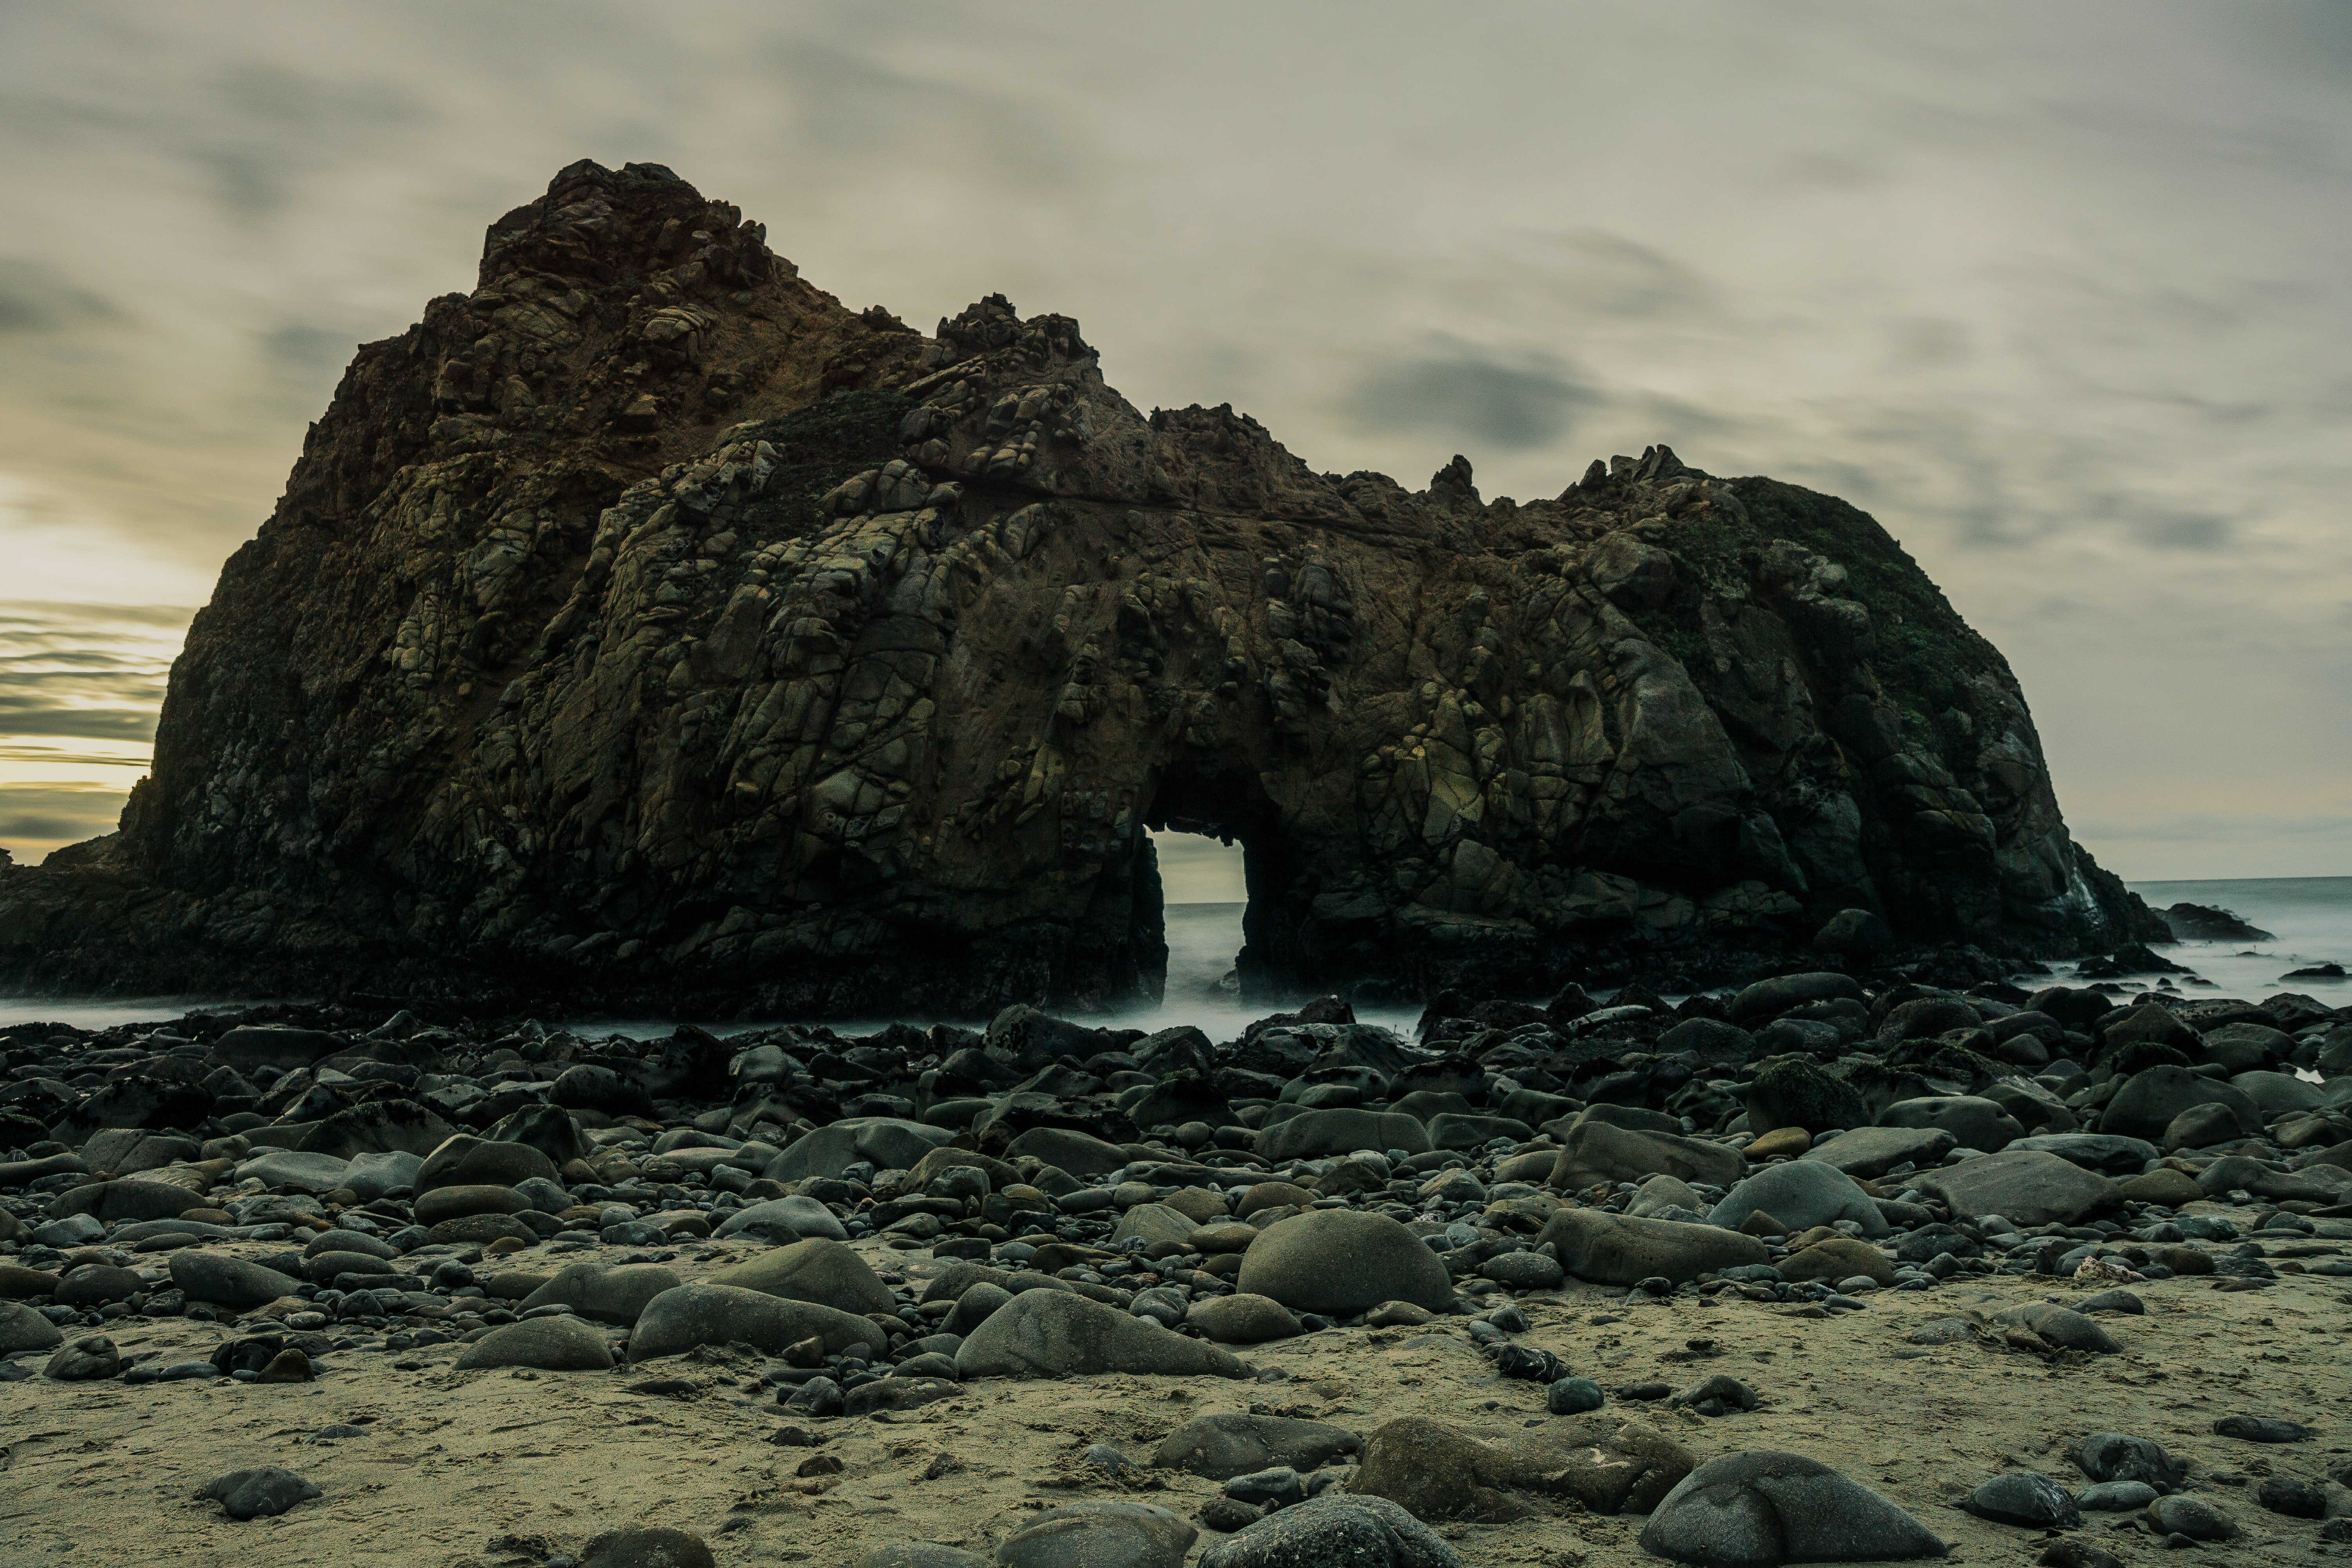 A rock formation with a tunnel on the beach.